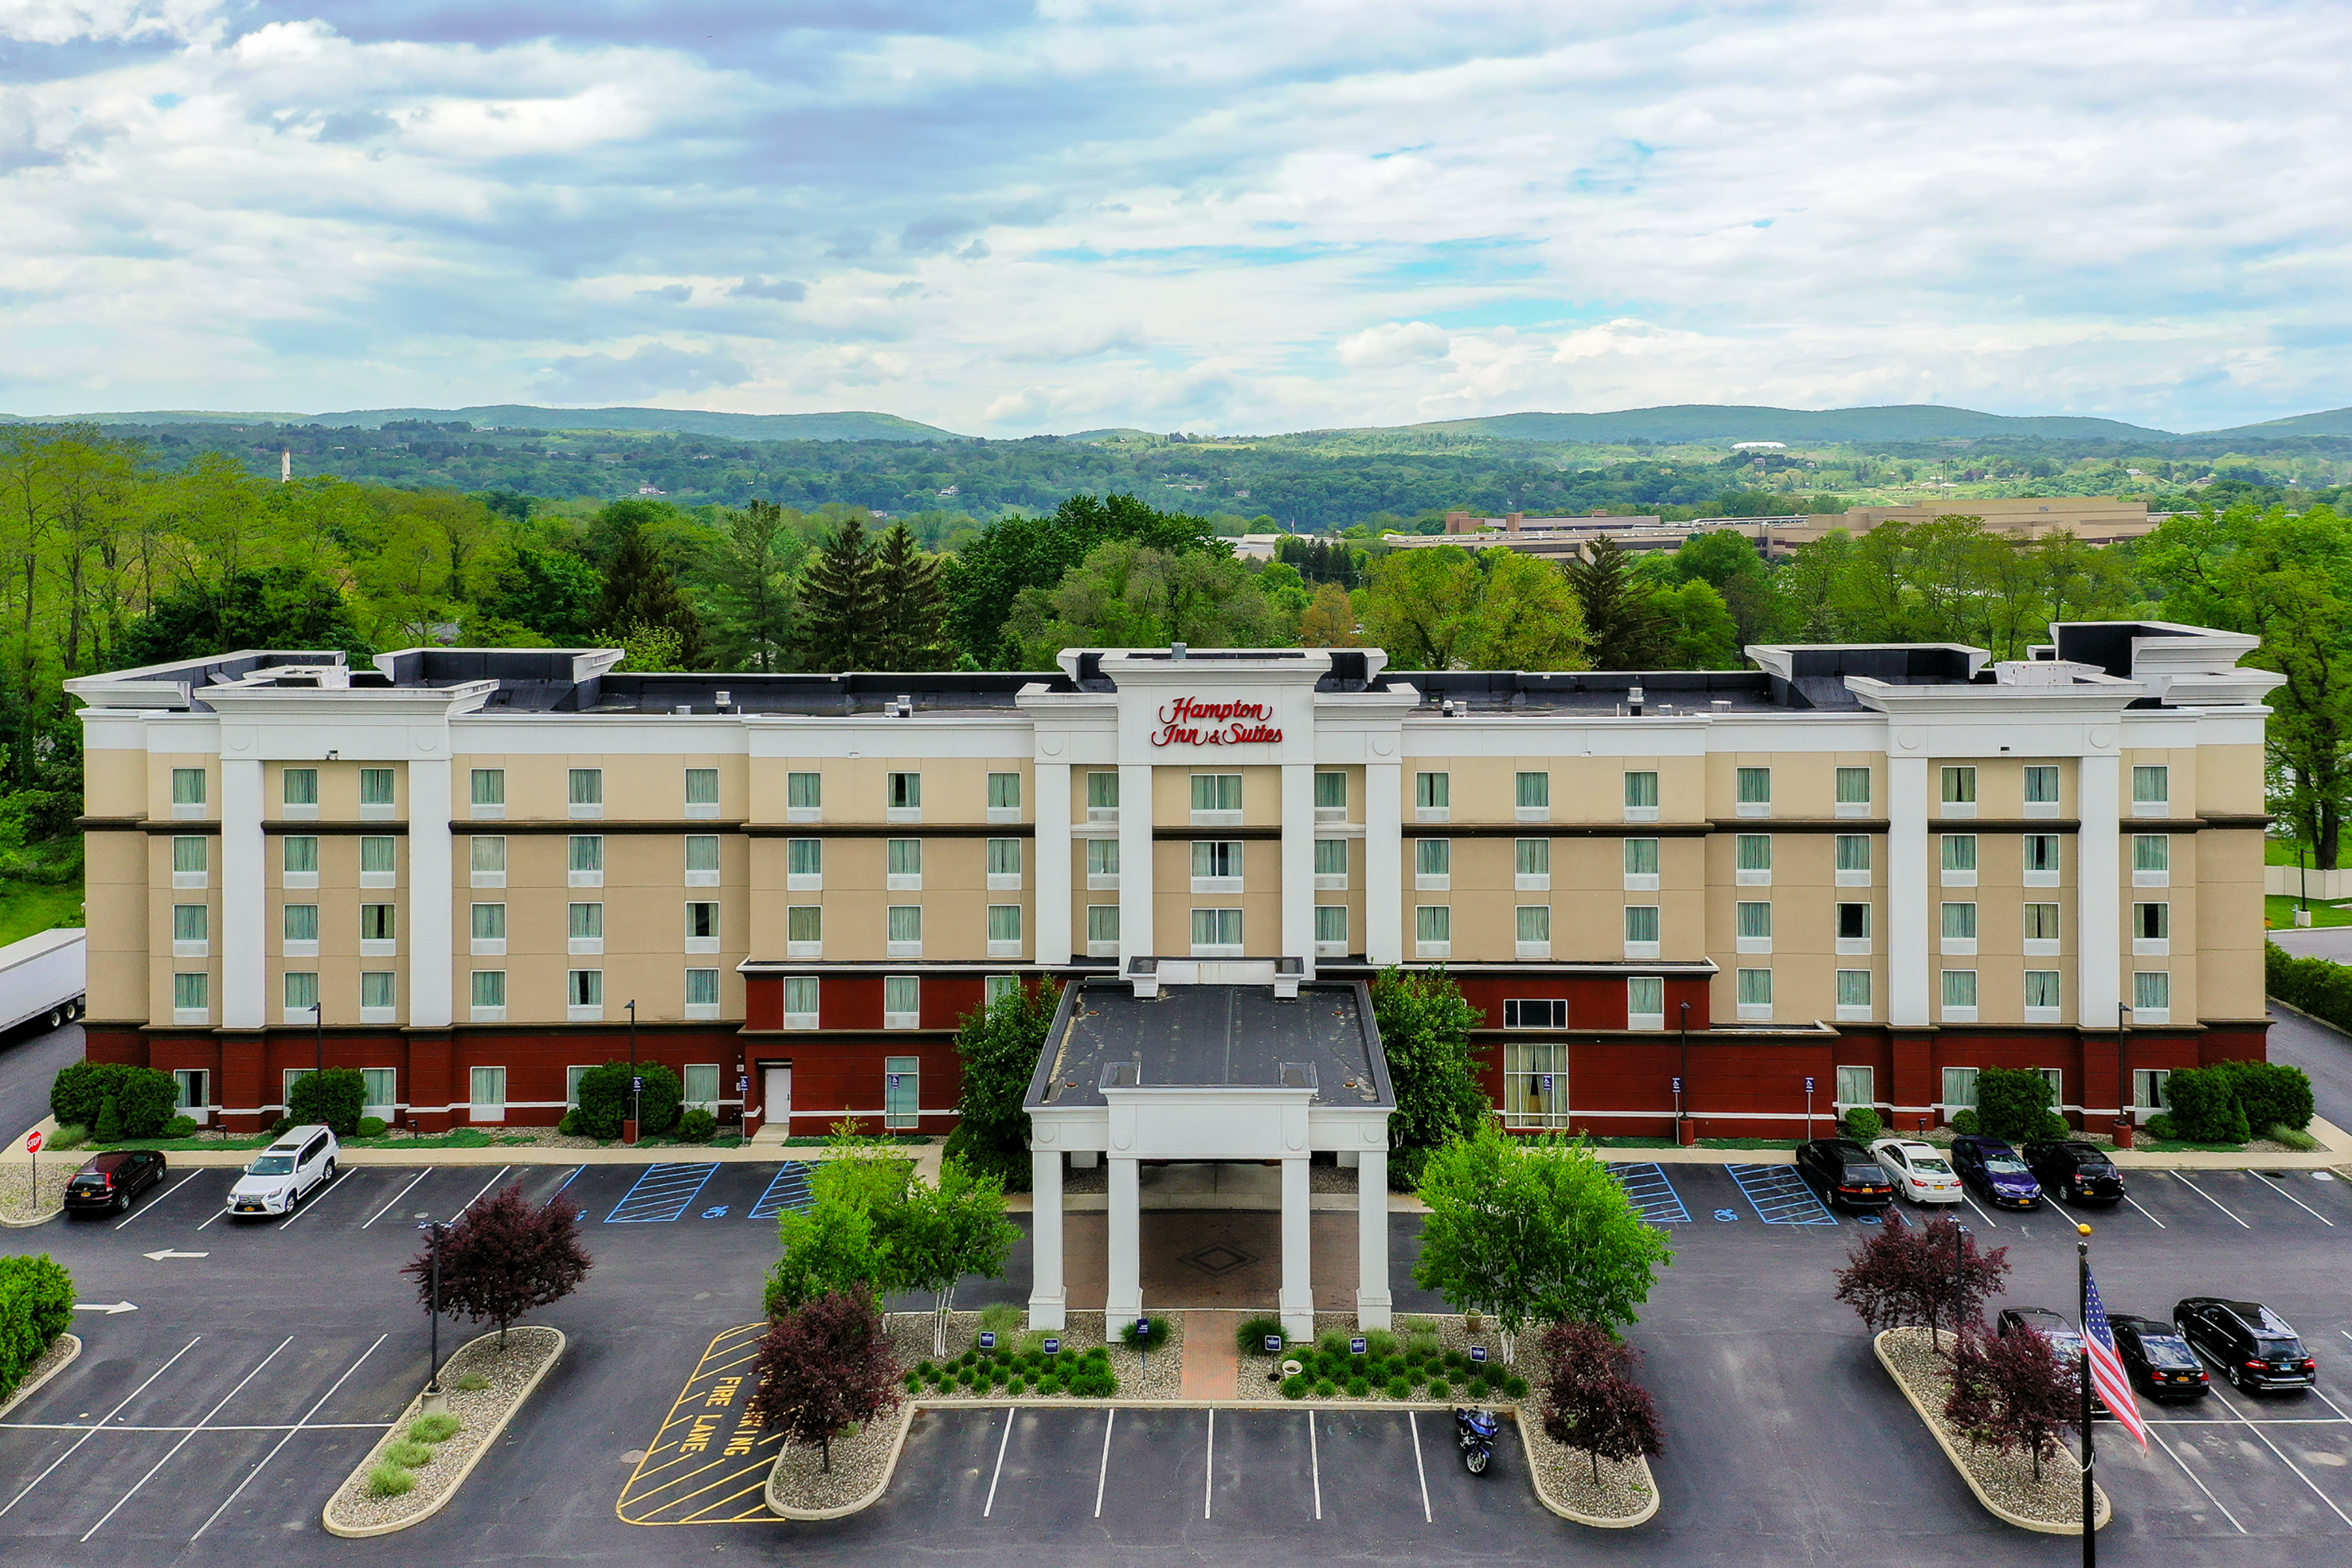 Aerial photo of front of Hampton Inn & Suites building